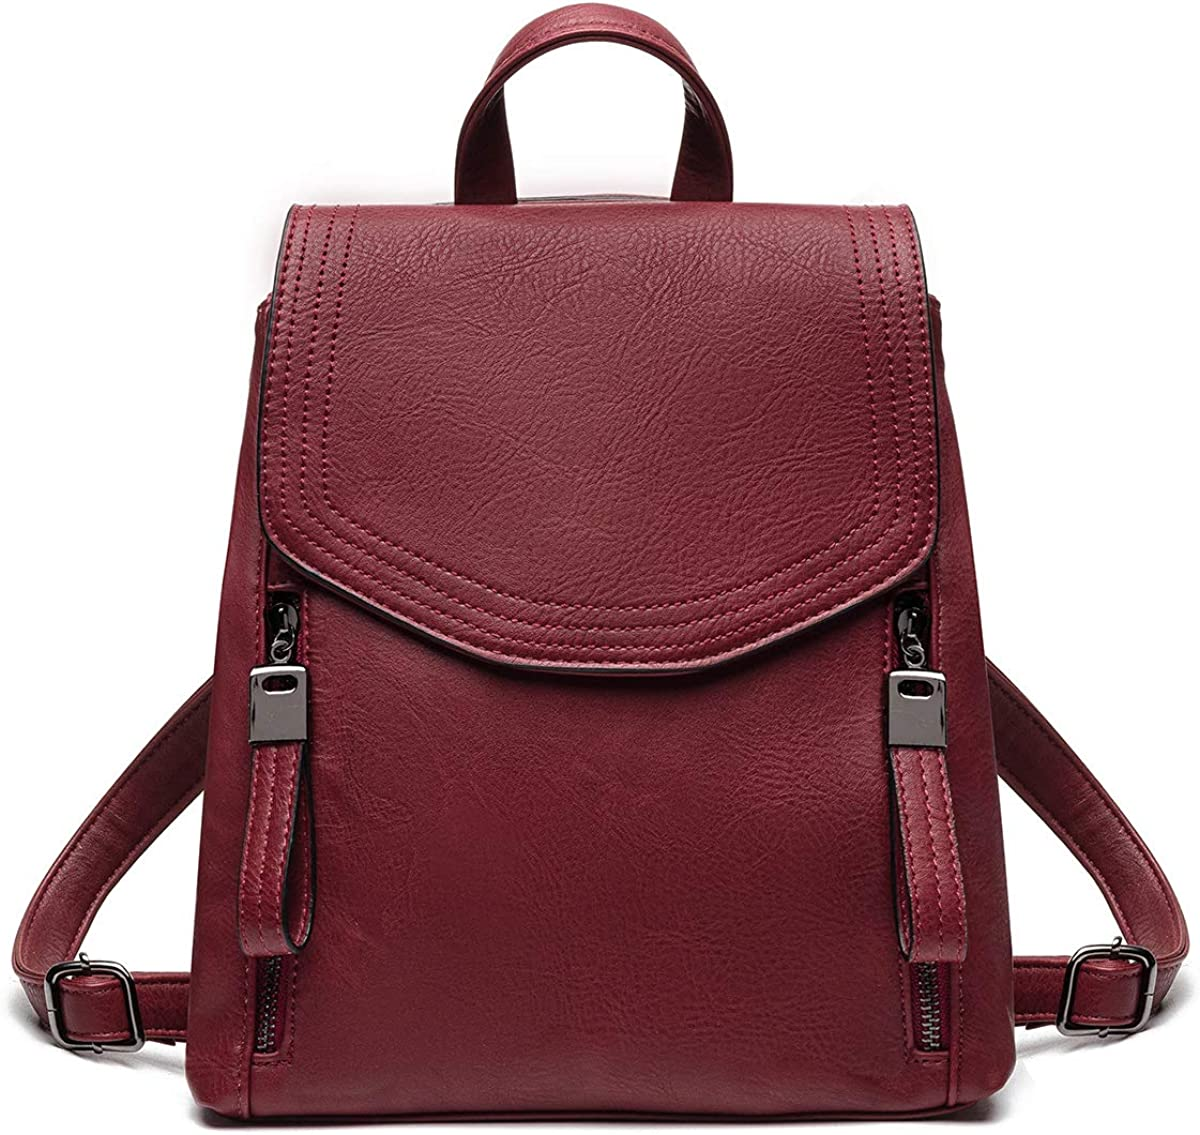 Small Leather Backpack JOSEKO Women College Backpack Shoulder Bag Casual Daypack